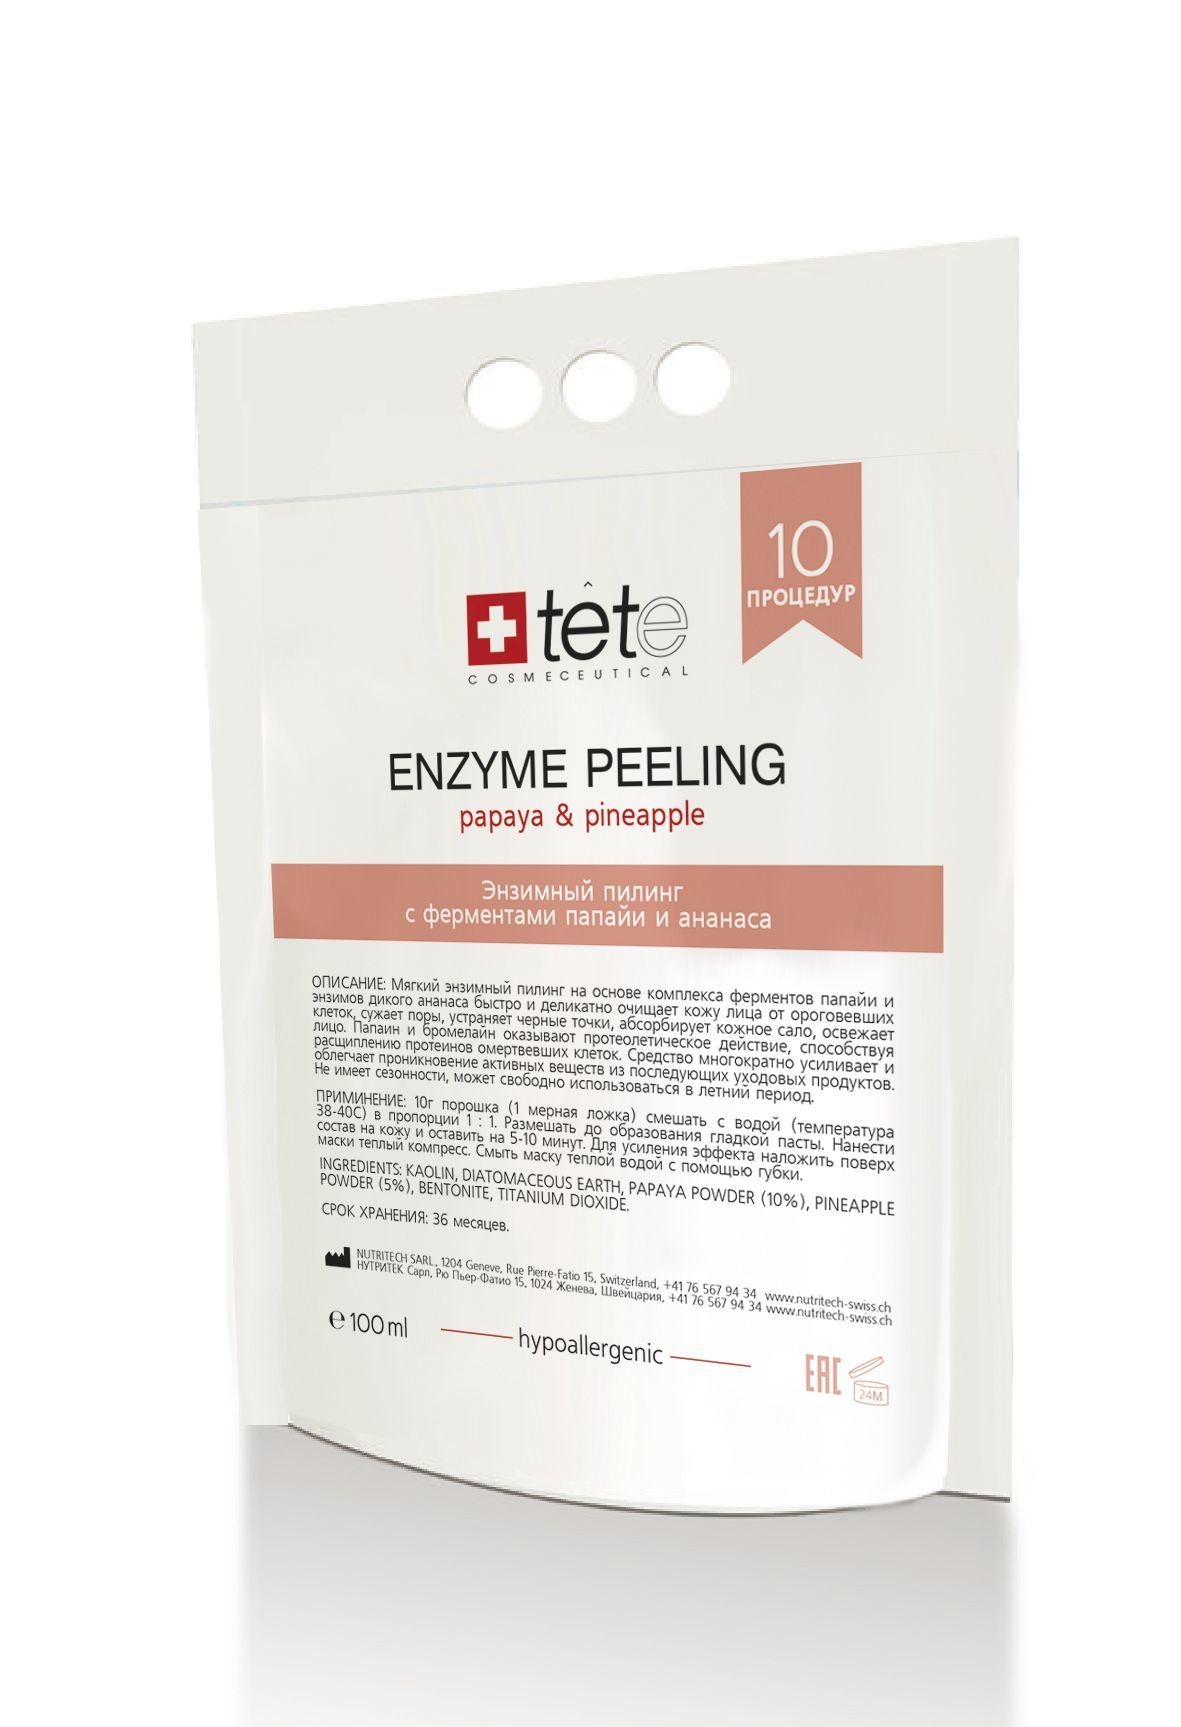 Энзимный пилинг с ферментами папайи и ананаса / TETe Enzyme peeling, 100 ml